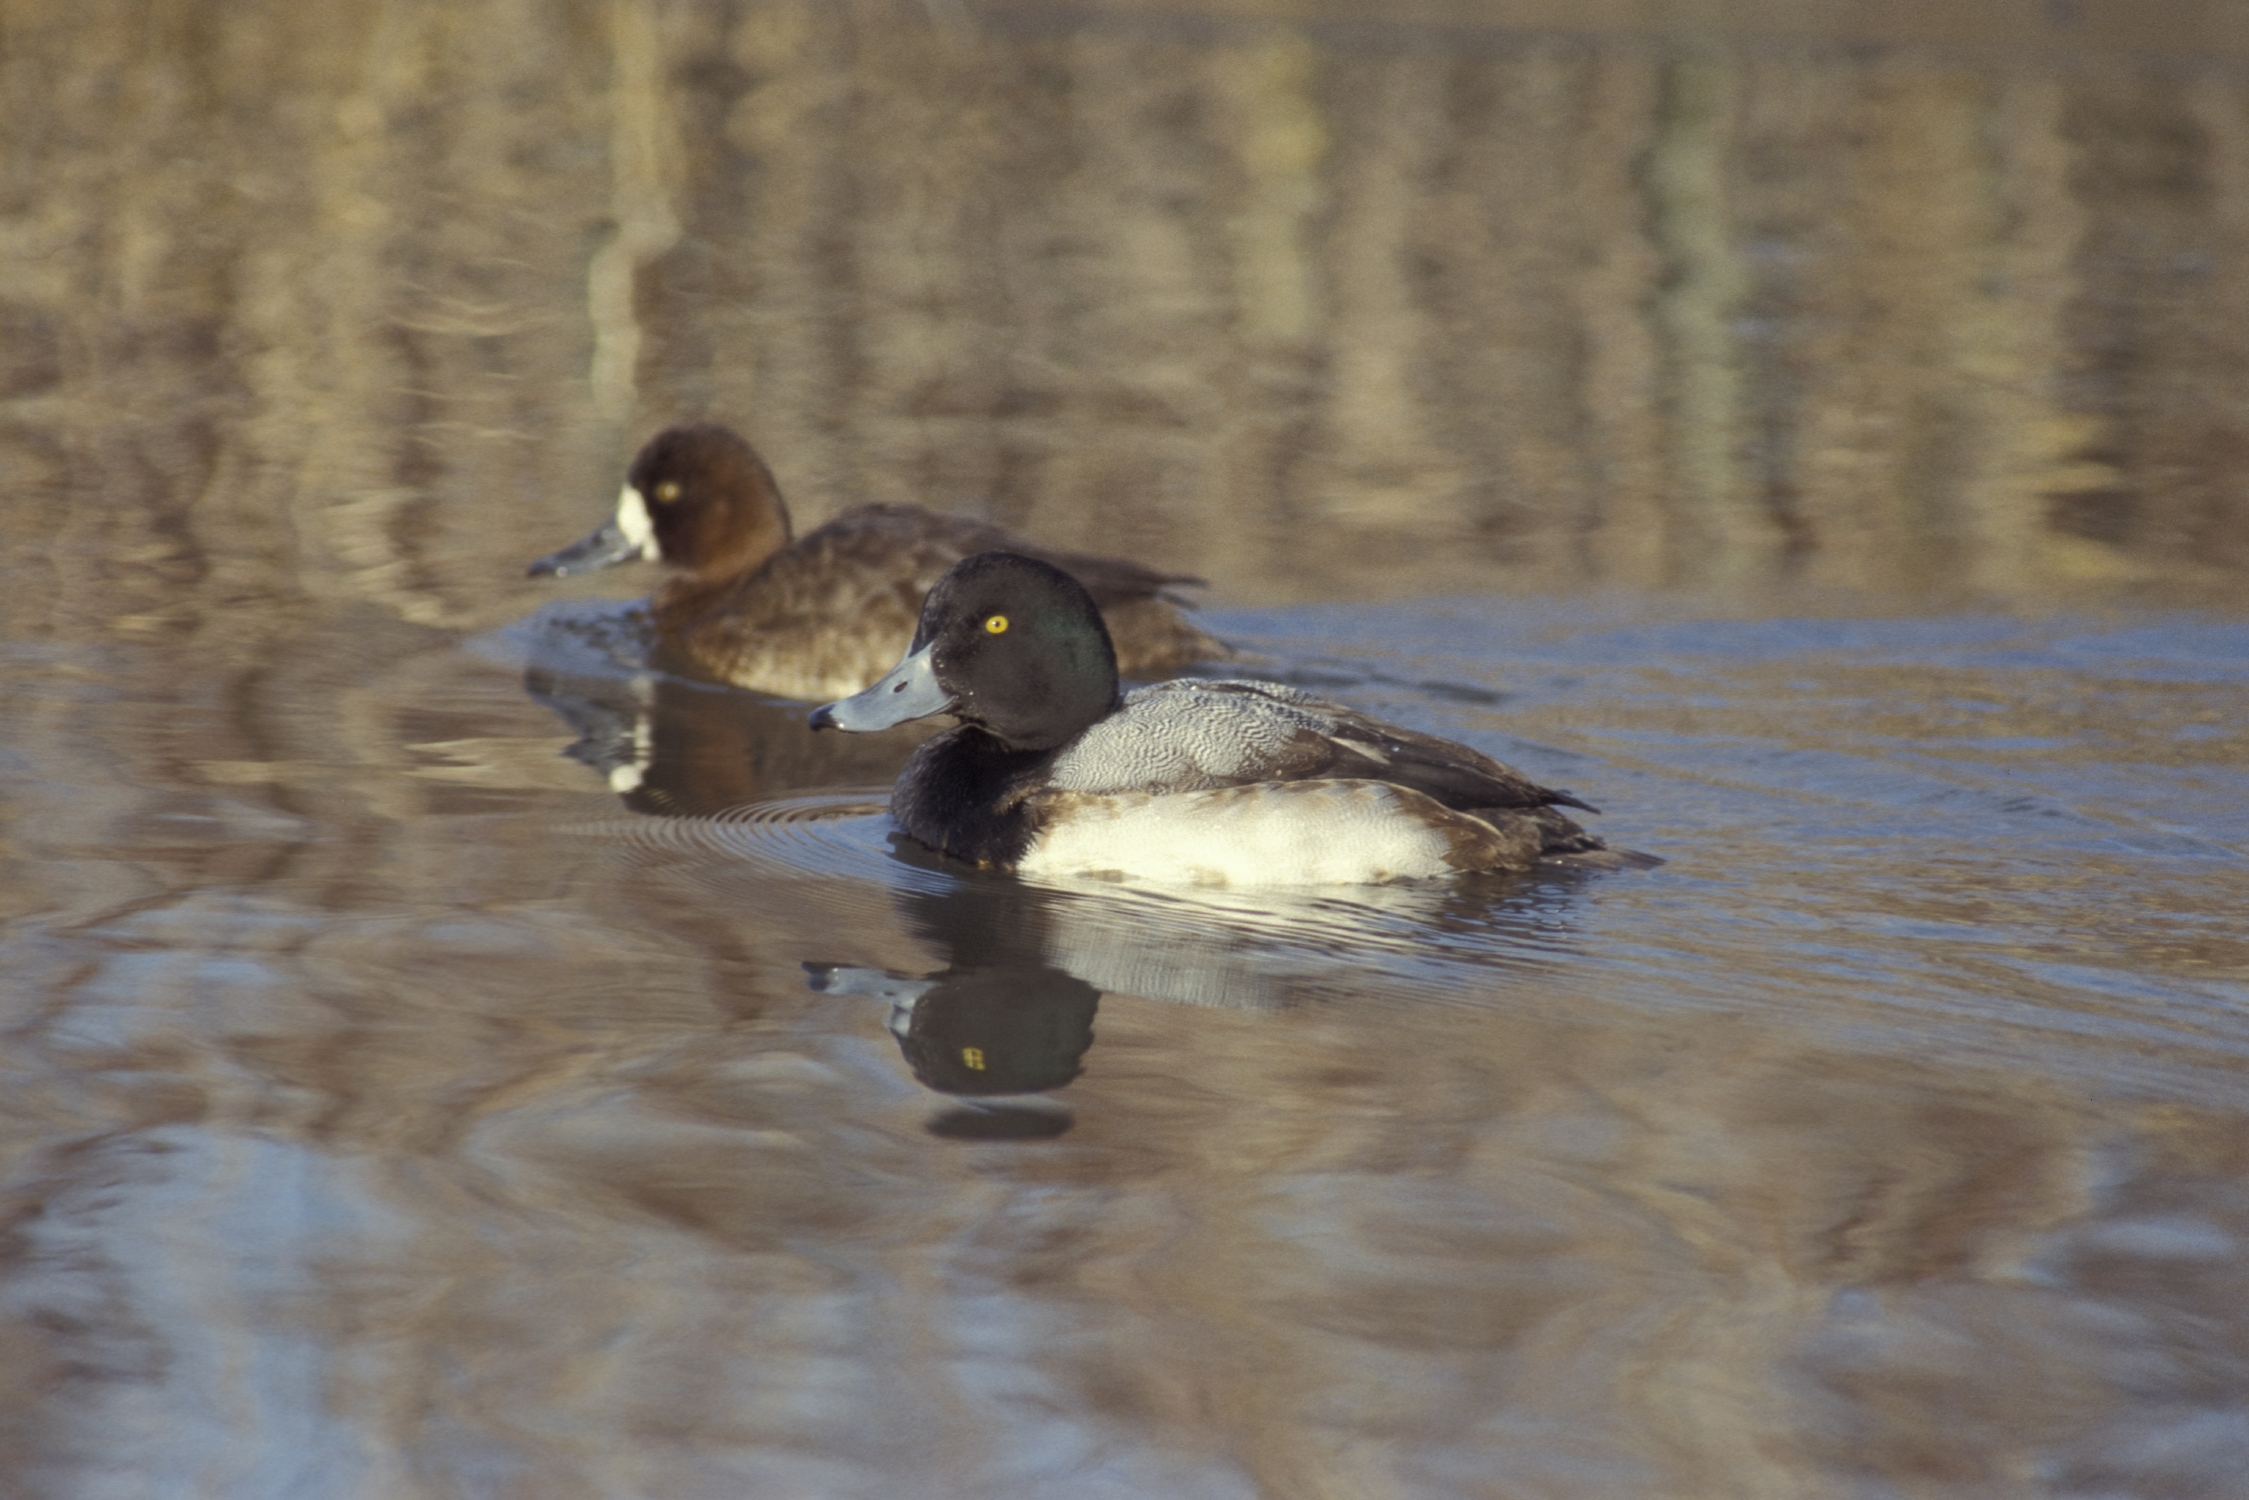 Greater scaup.  The greater scaup is a mid-sized diving duck, larger than the closely related lesser scaup